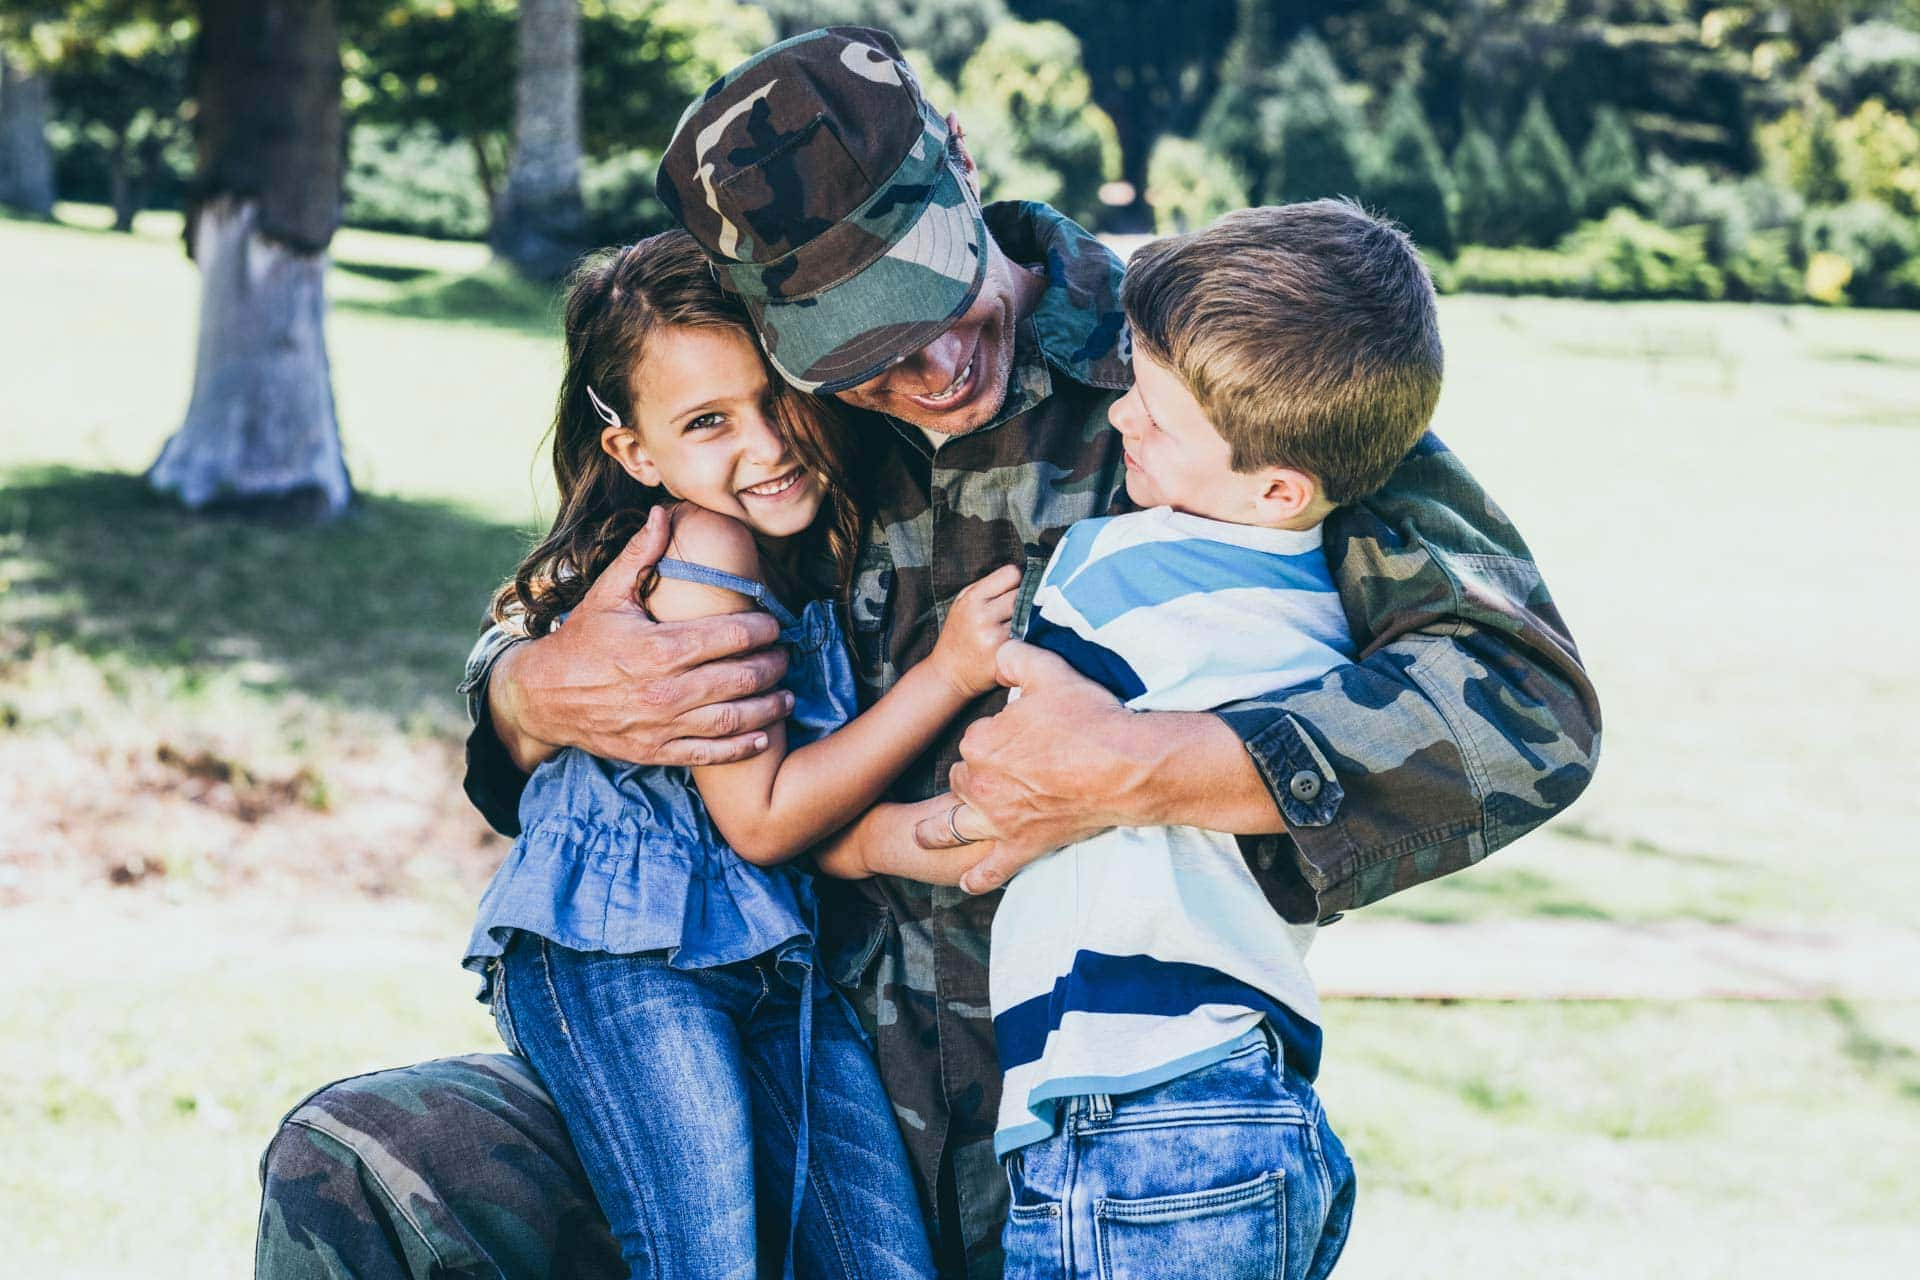 Inaugural GivingTuesday military edition aims to inspire 1 Million acts of kindness worldwide on Dec. 3